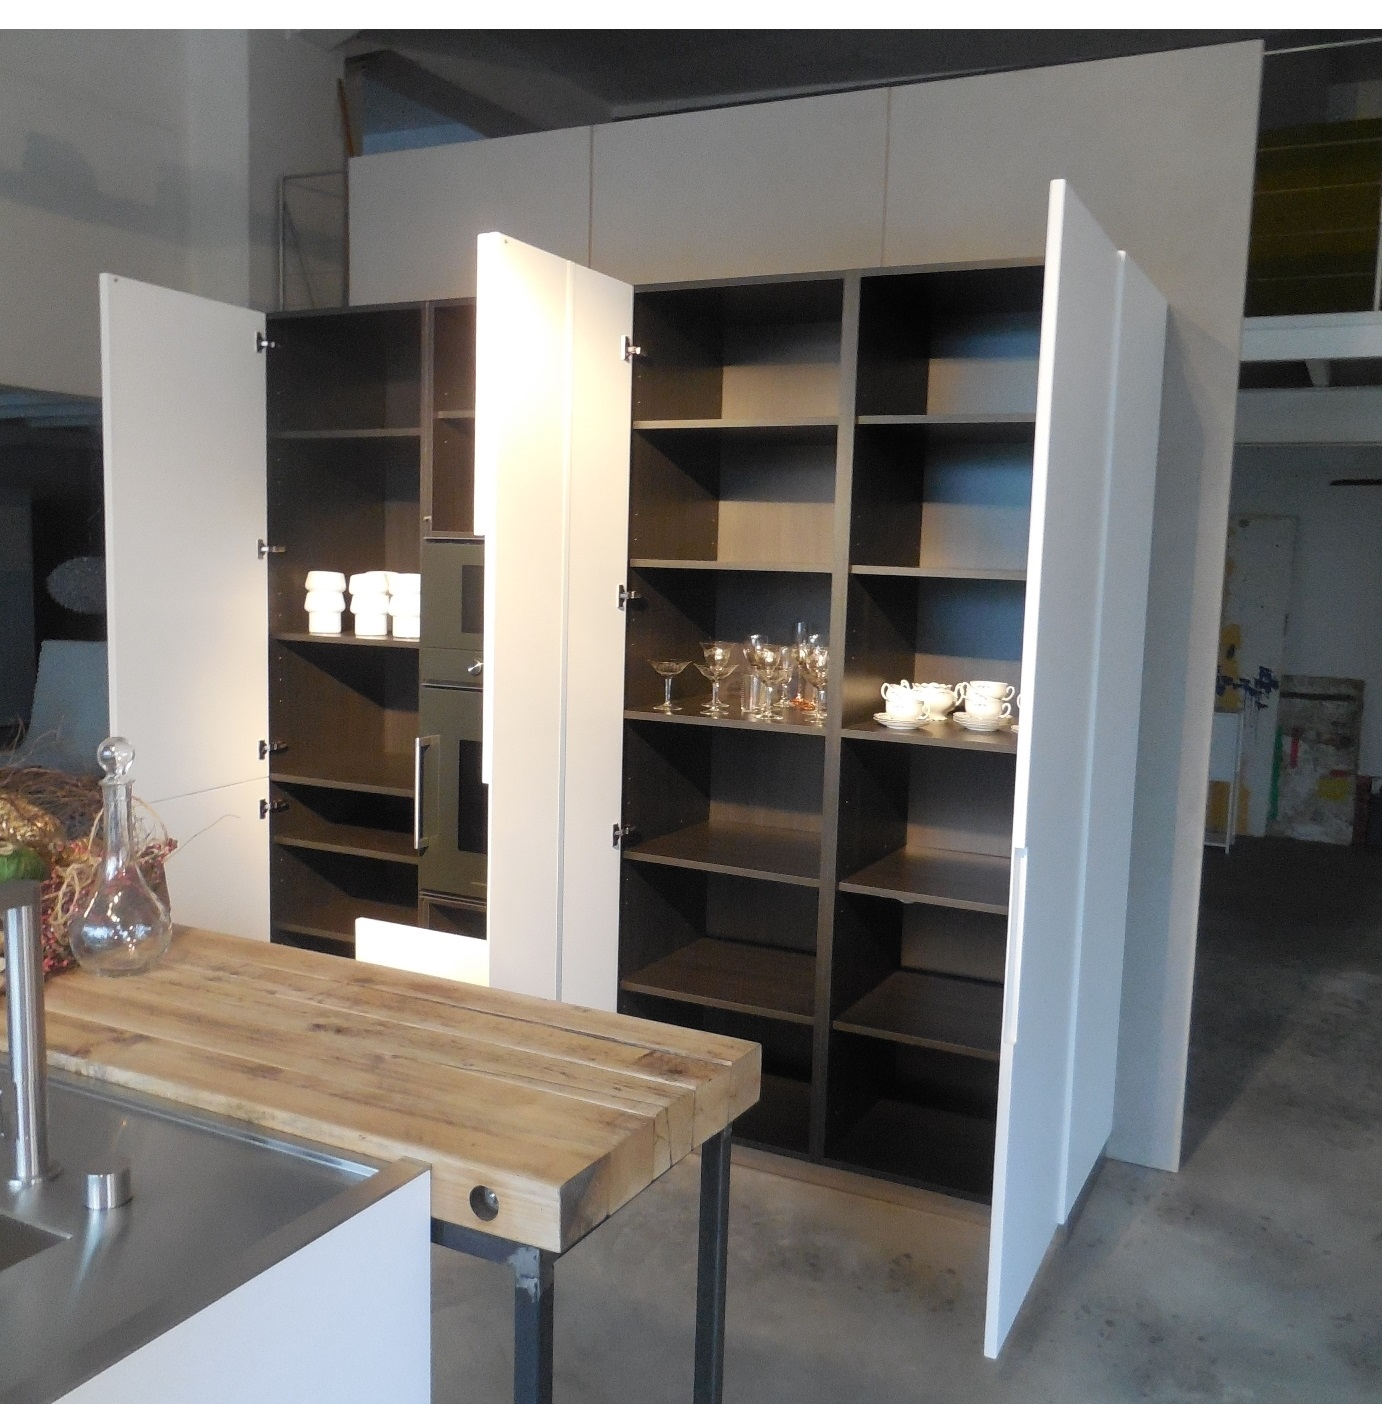 Mini cucine scomparsa ikea : mini cucine a scomparsa ikea. mini ...